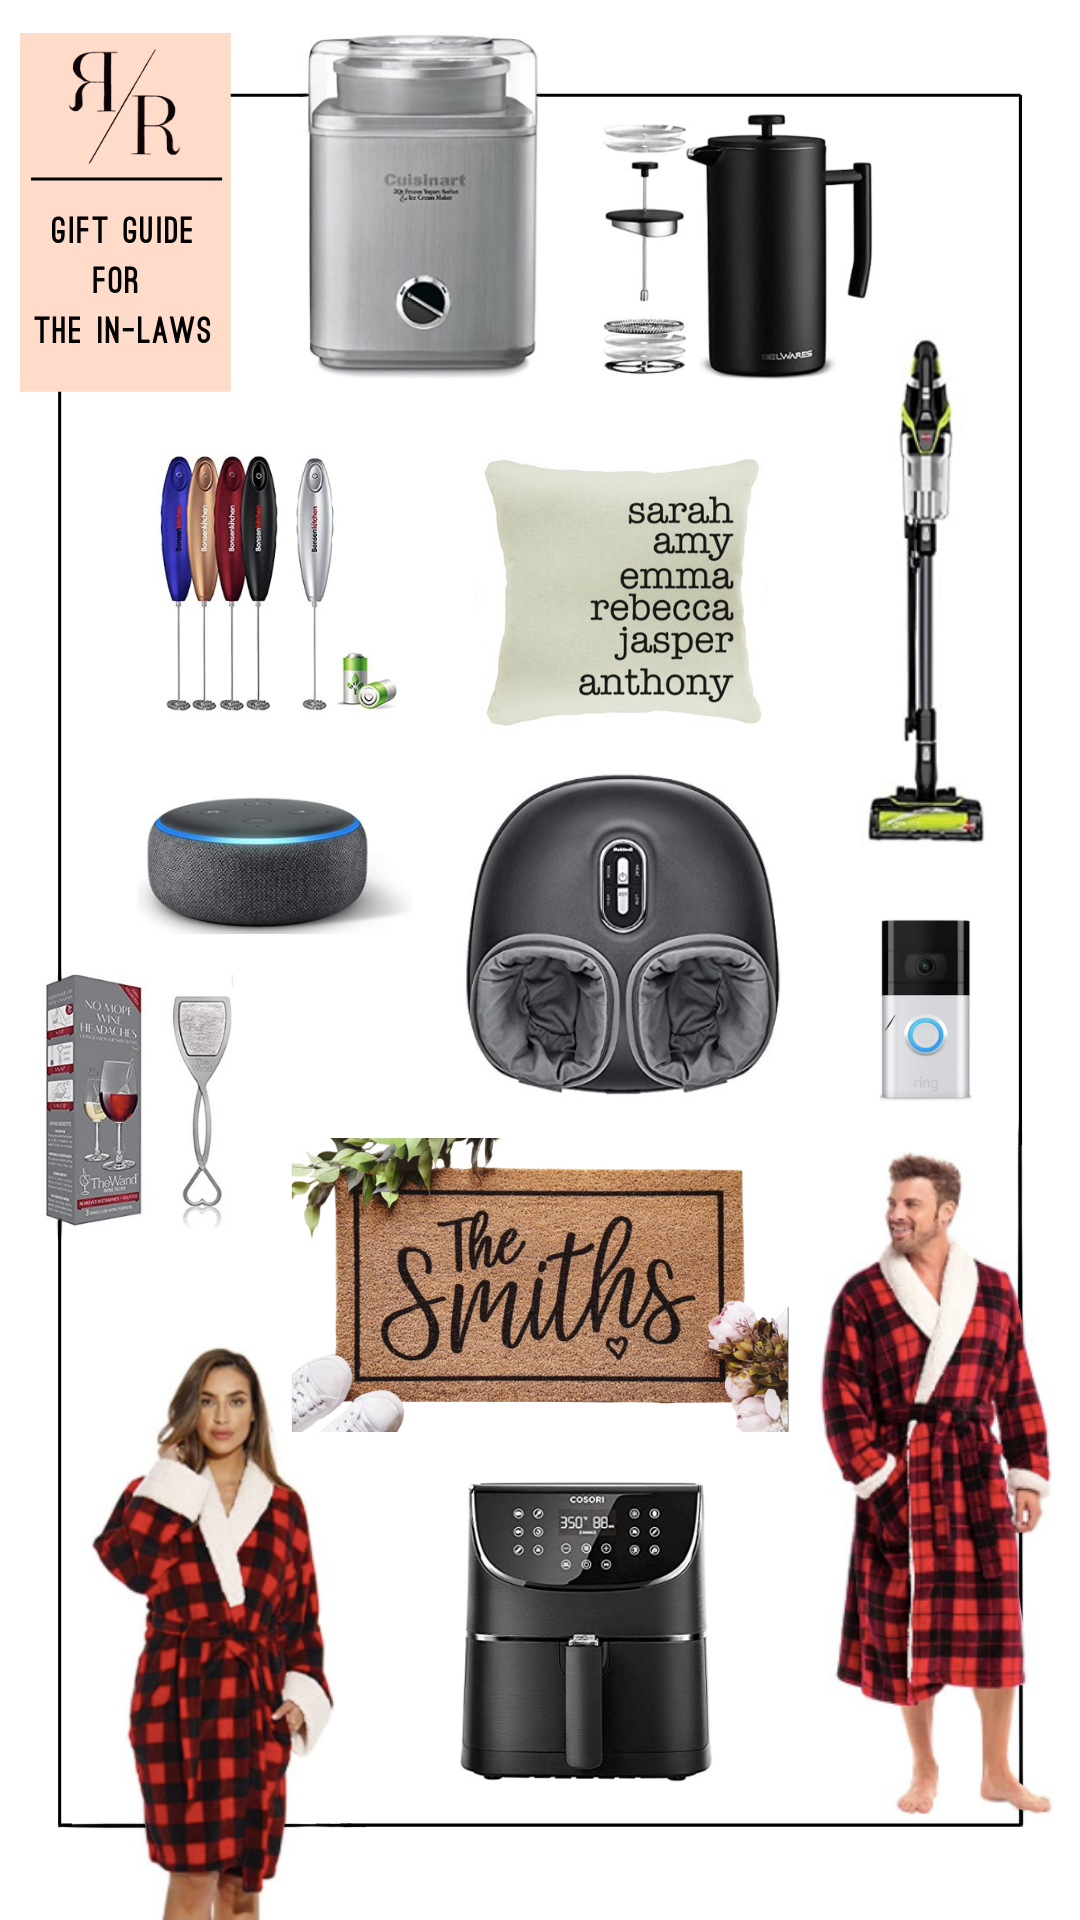 Ruthie Ridley Blog Gift Guide For The In-Laws